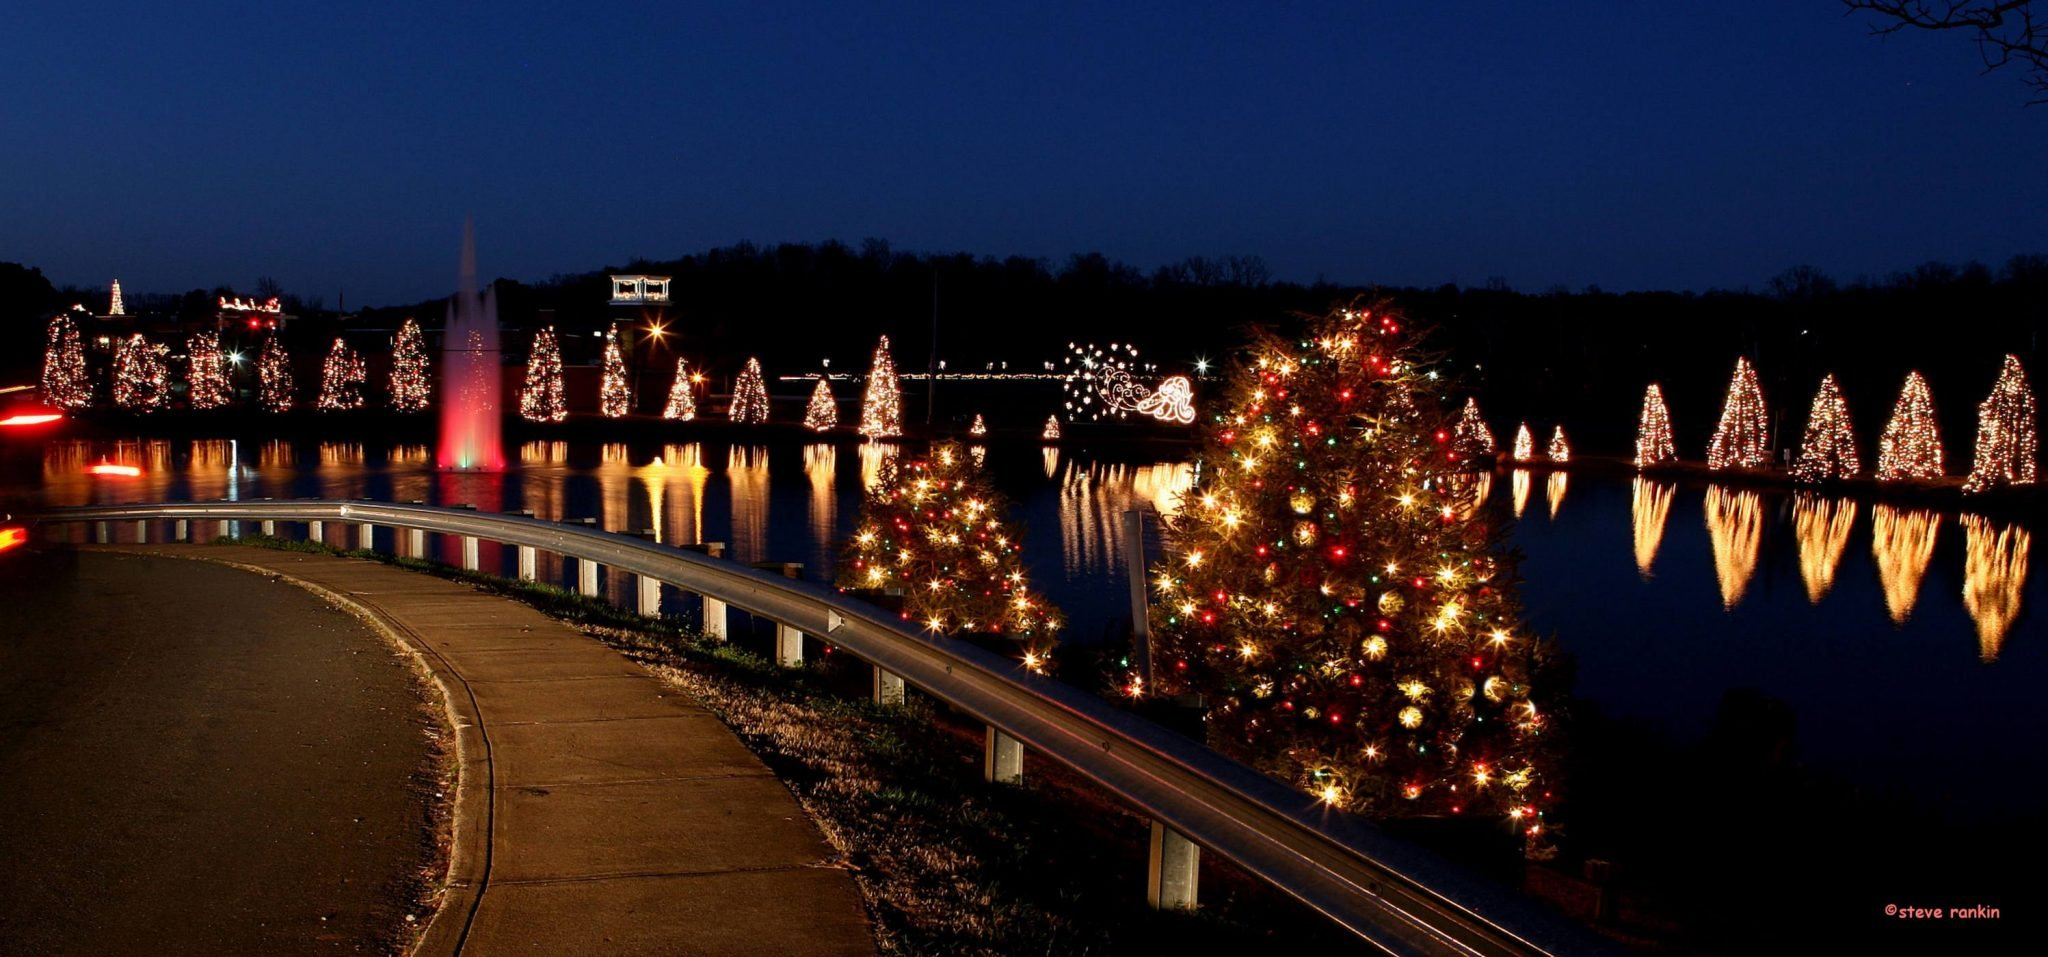 Visit These 20 Small Towns To See Beautiful Christmas Lights